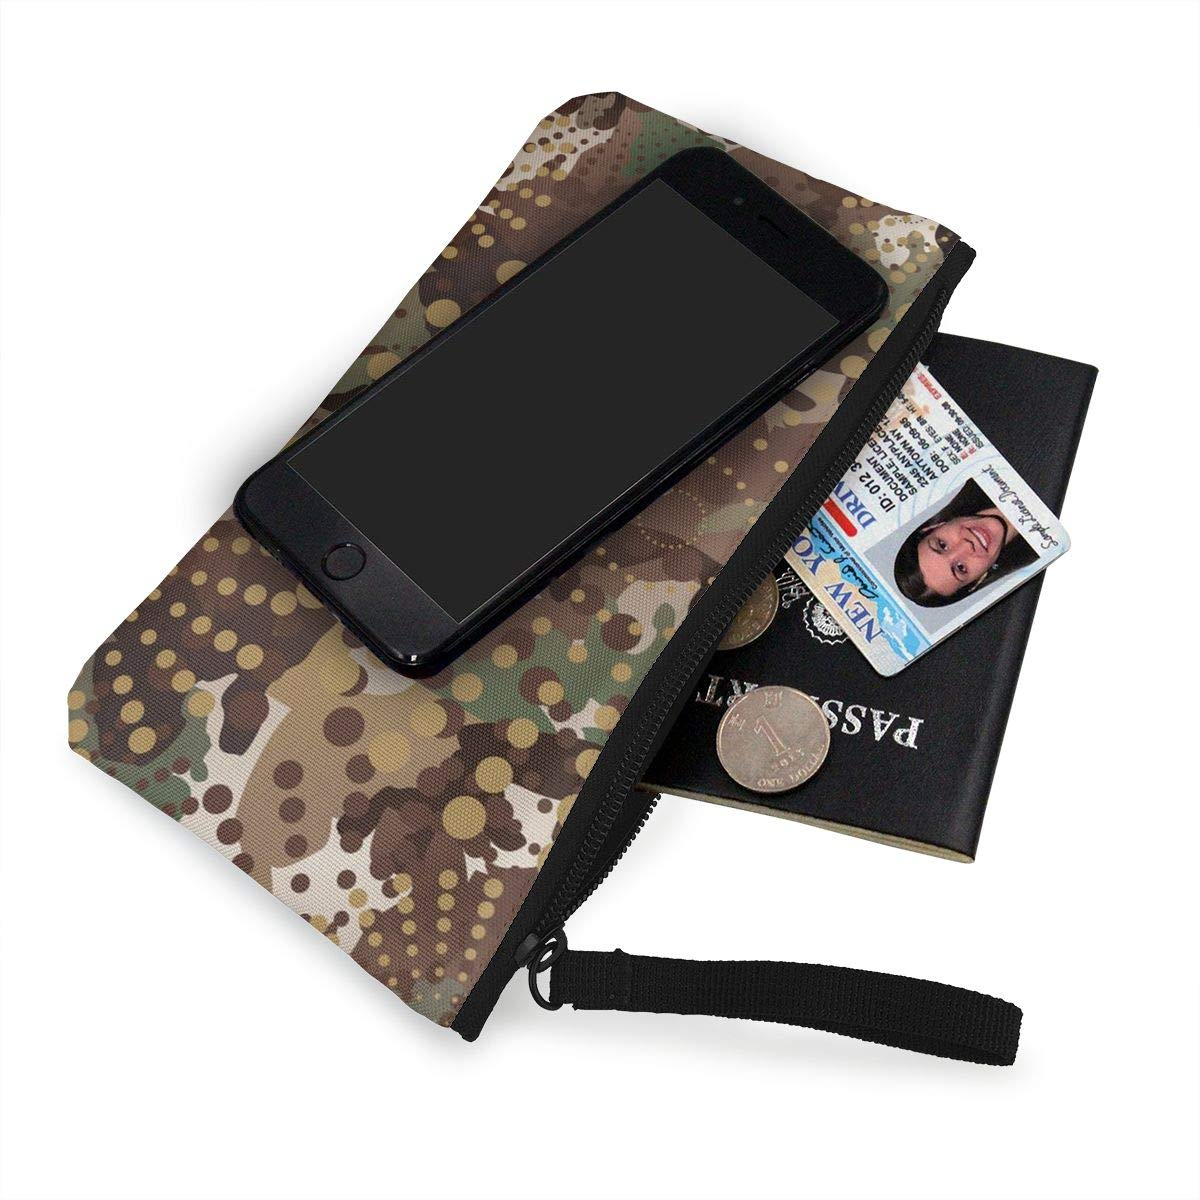 Yamini Camouflage and Halftone Pattern Background Cute Looking Coin Purse Small and Exquisite Going Out to Carry Purse